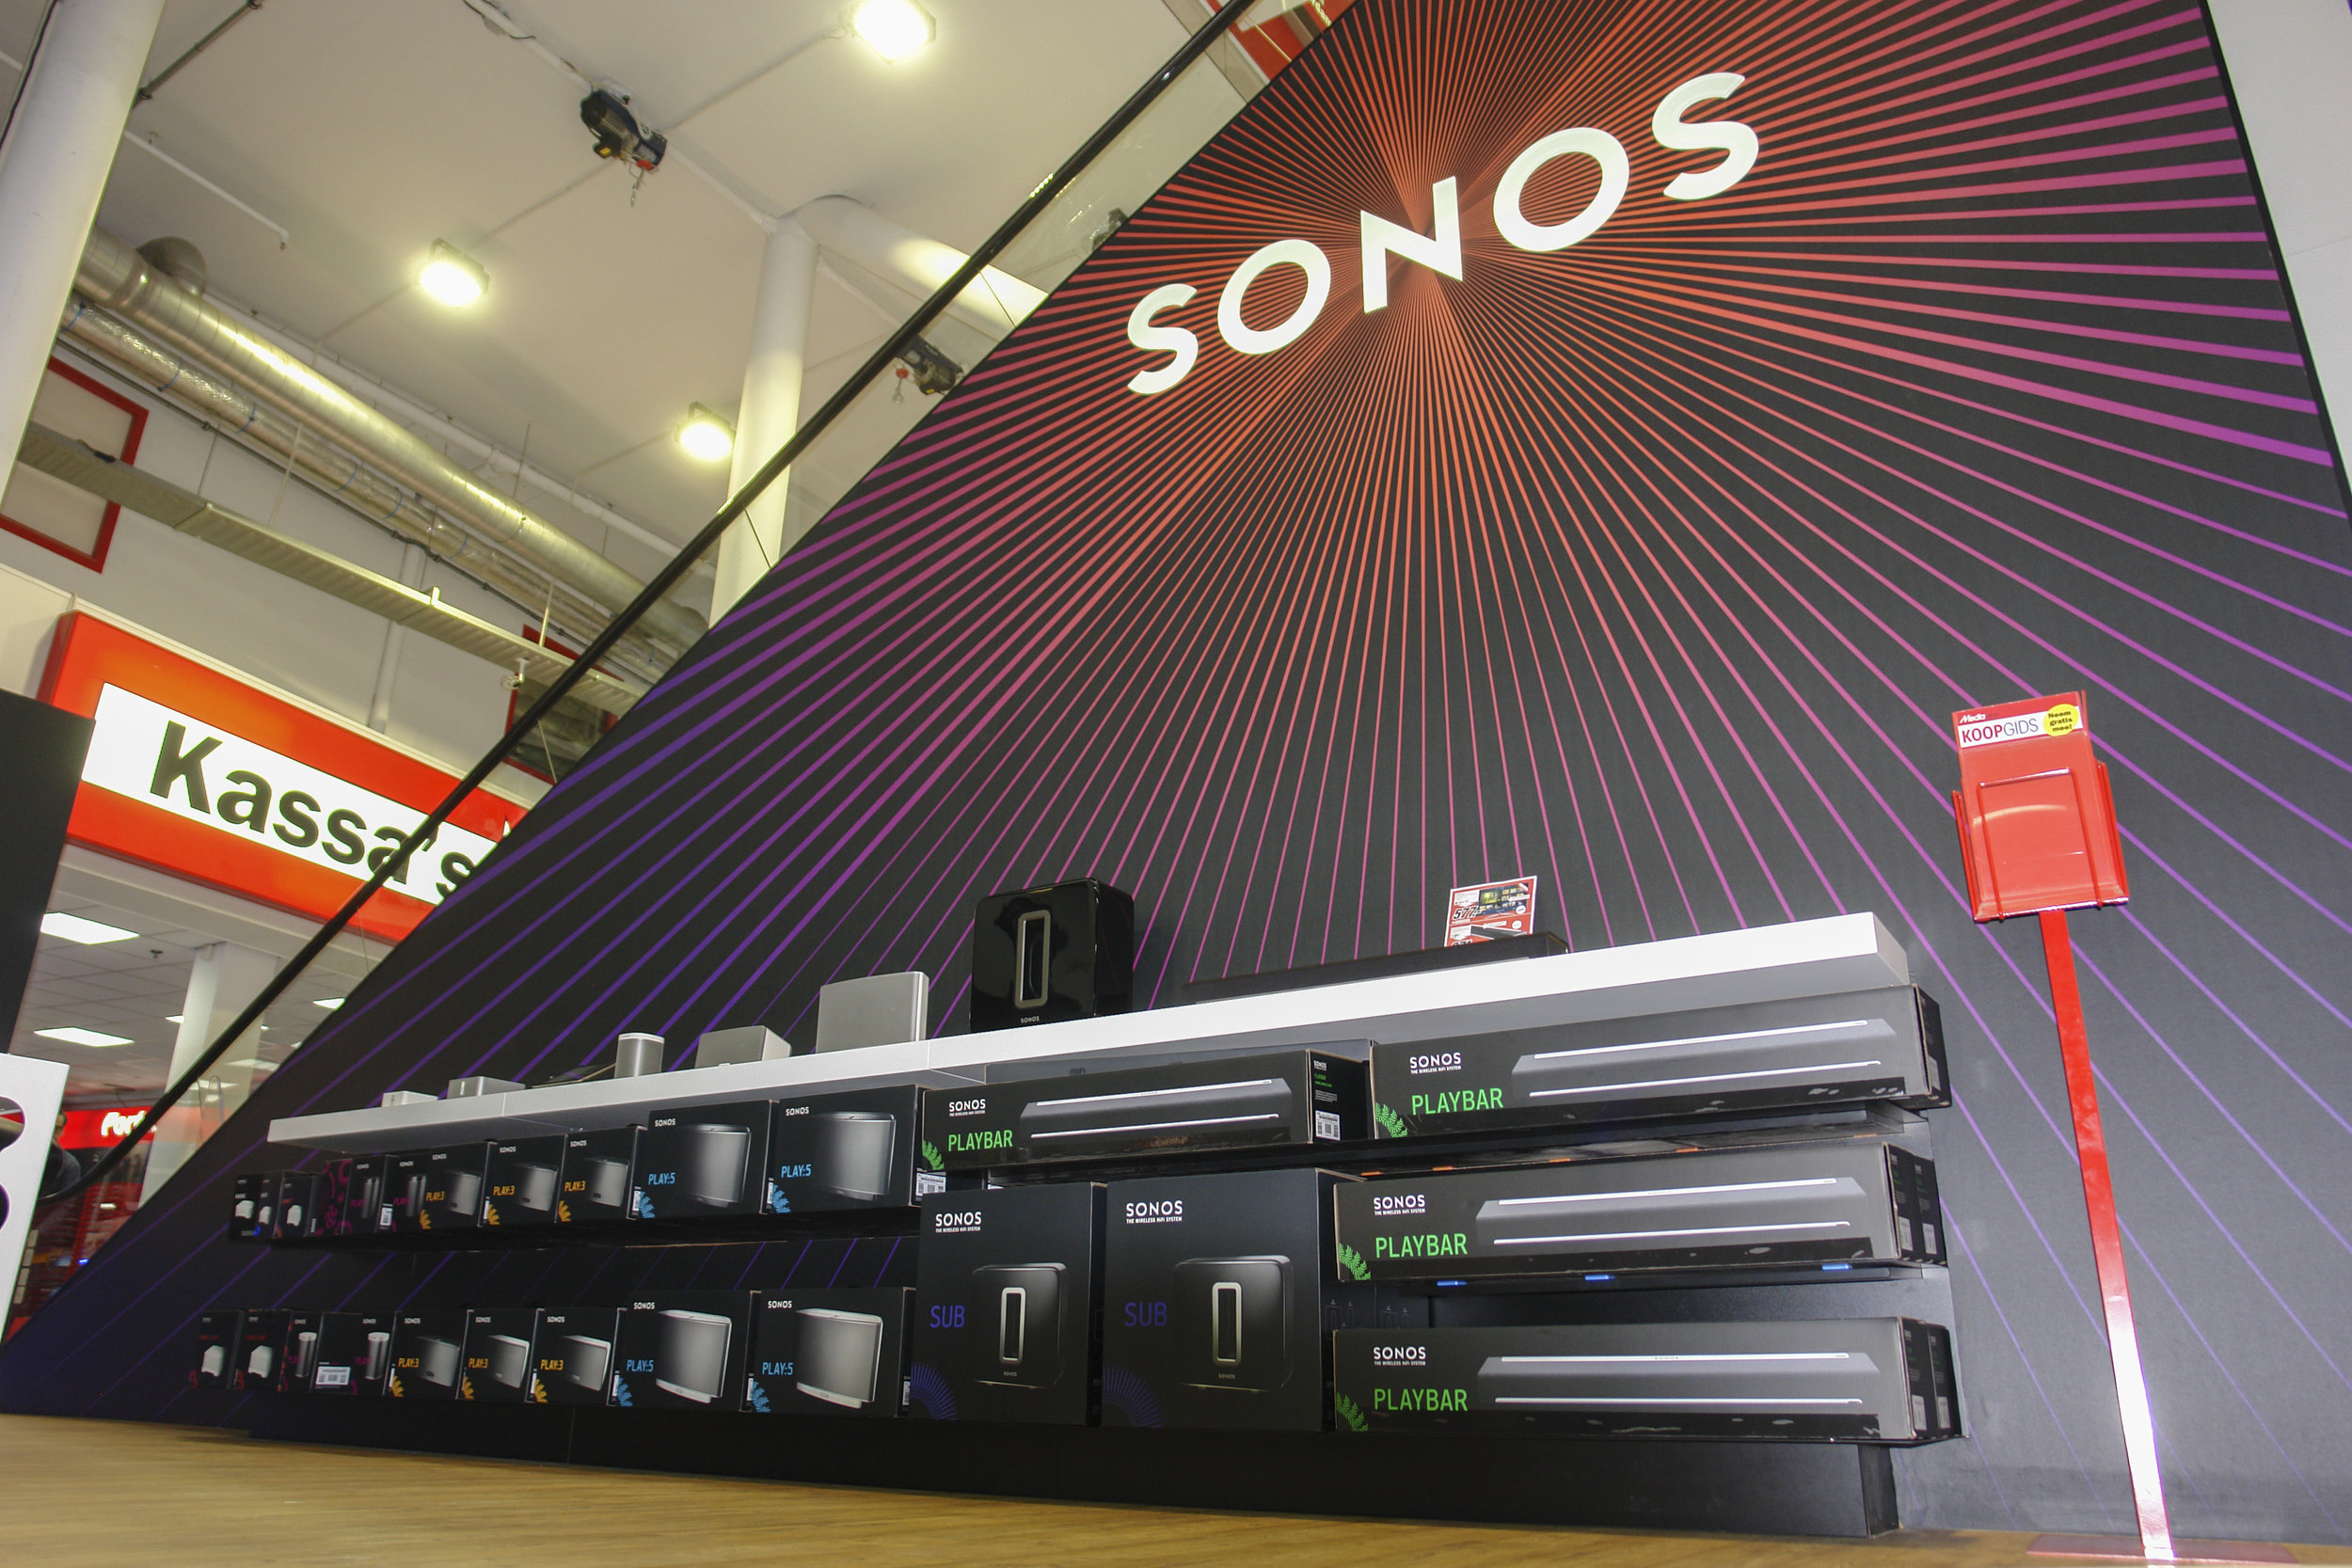 Promotioneel sonos display 2.jpg